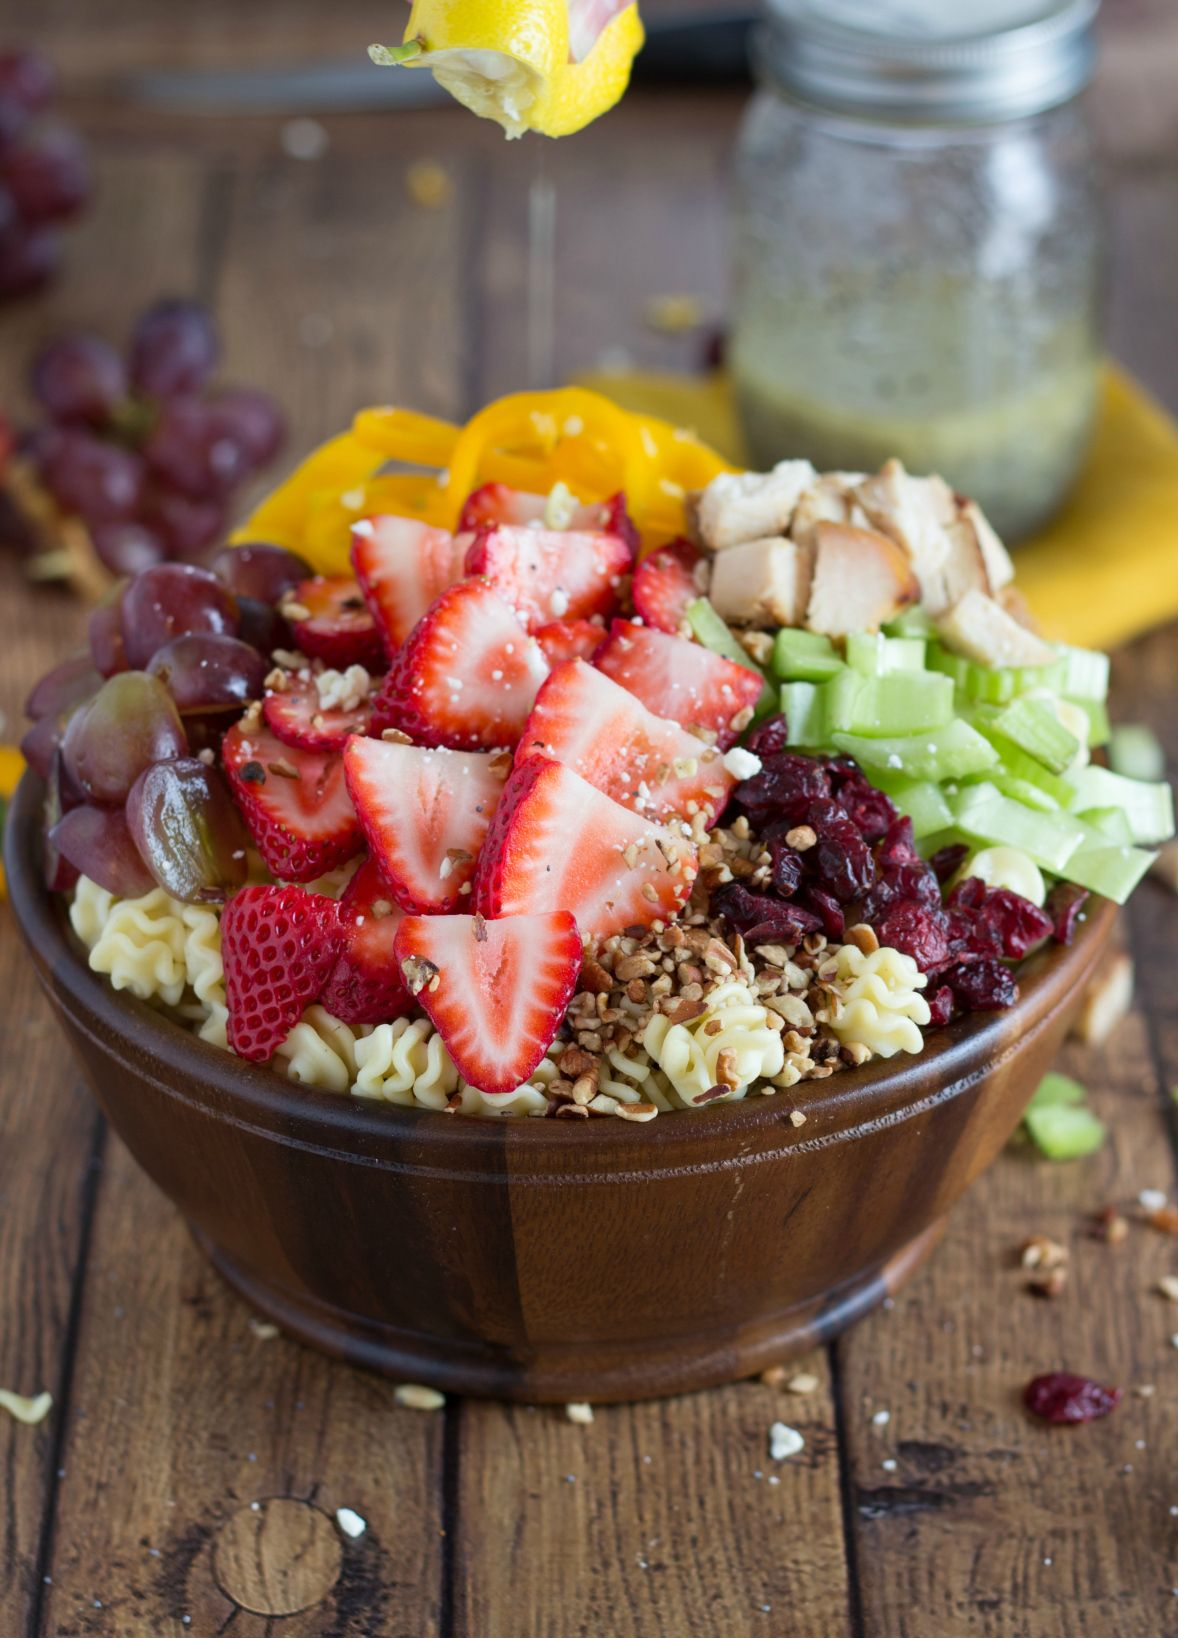 Lemon Poppyseed Strawberry Salad - 12 Fantastic, Flavorful Strawberry Salad Recipes for Spring